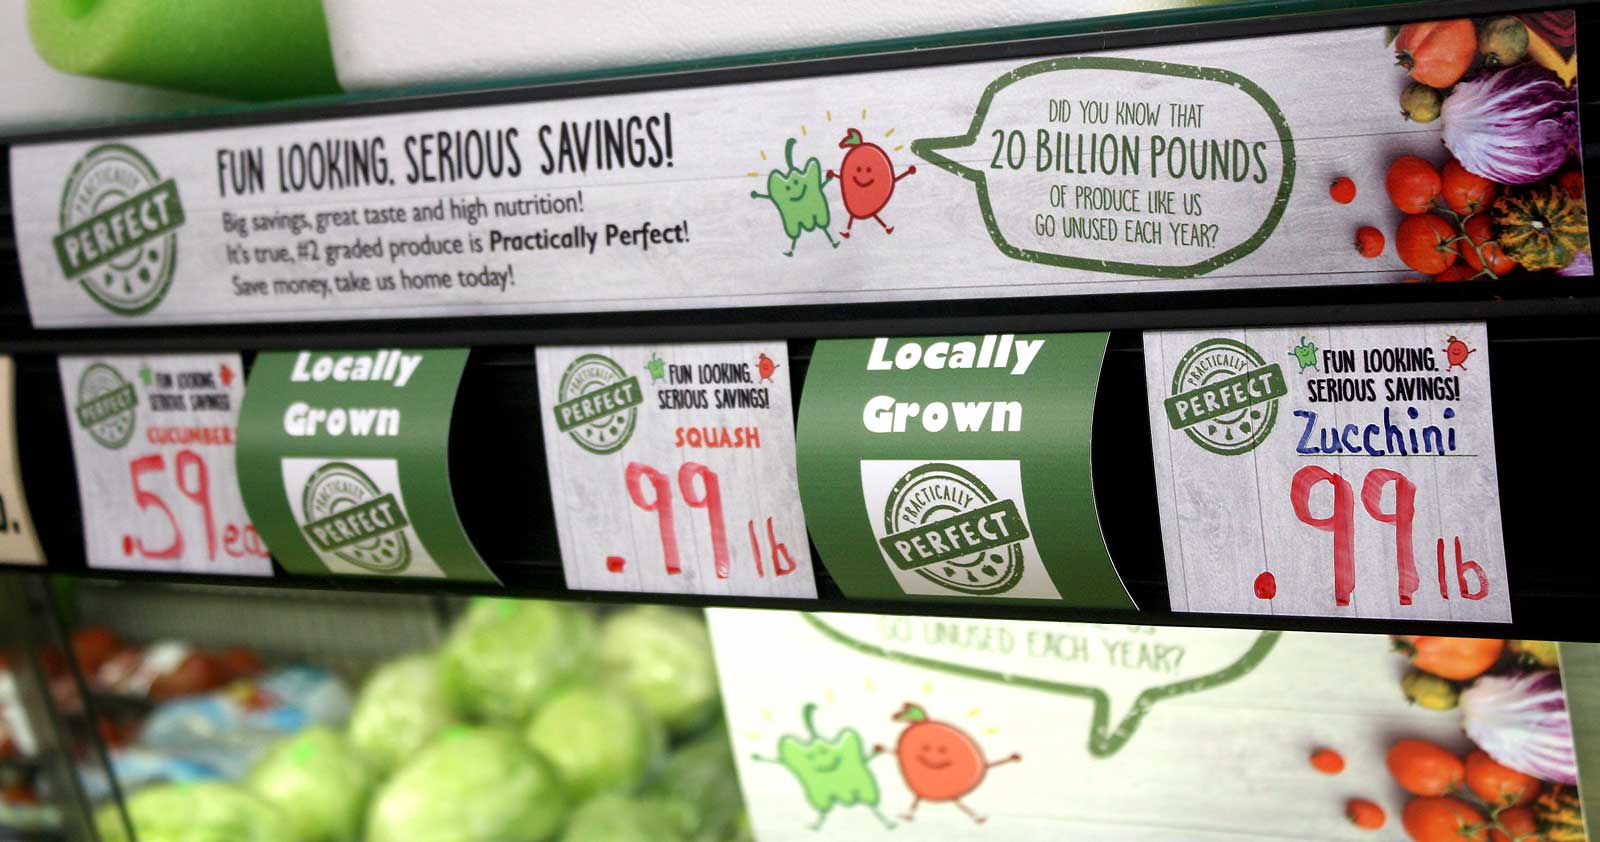 Practically Perfect brand signs for pricing shown above produce section